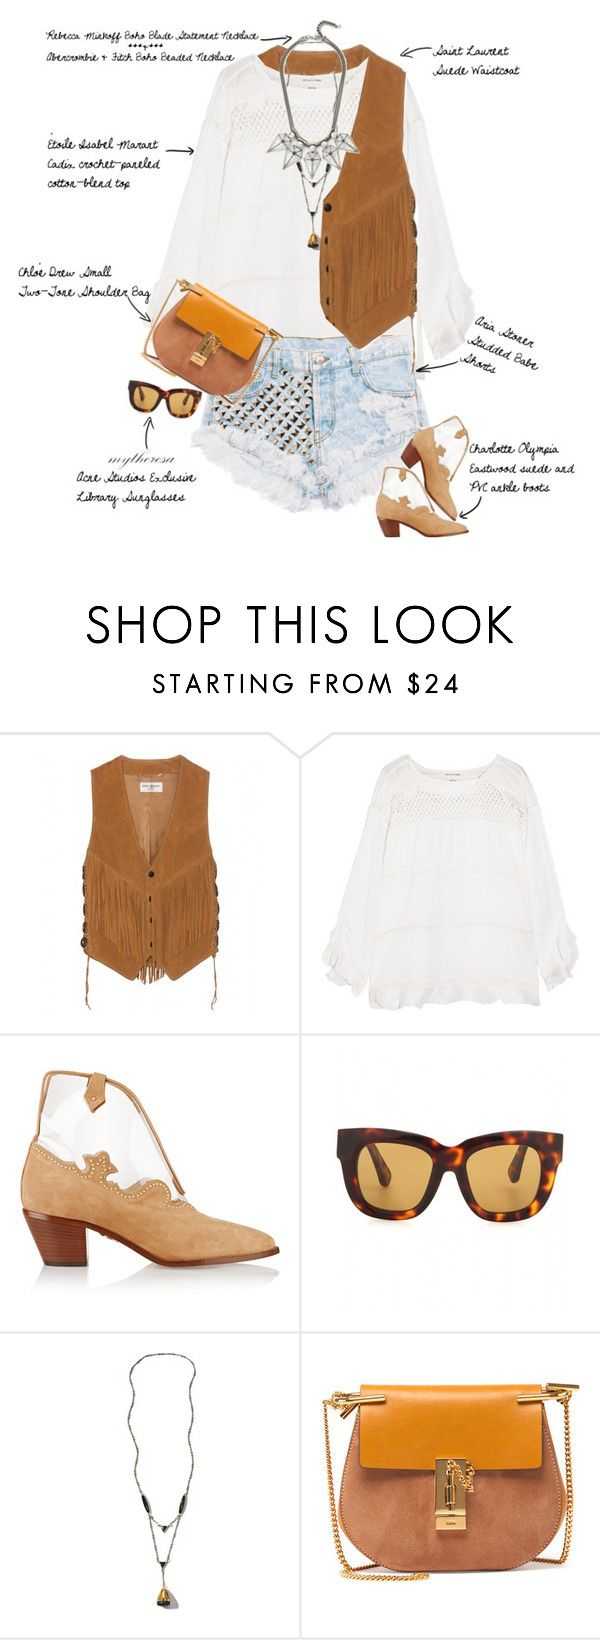 """""""Let The Sunshine In"""" by fashionscribbles ❤ liked on Polyvore featuring Yves Saint Laurent, Étoile Isabel Marant, Charlotte Olympia, Acne Studios, Abercrombie & Fitch, Chloé, Rebecca Minkoff and country"""